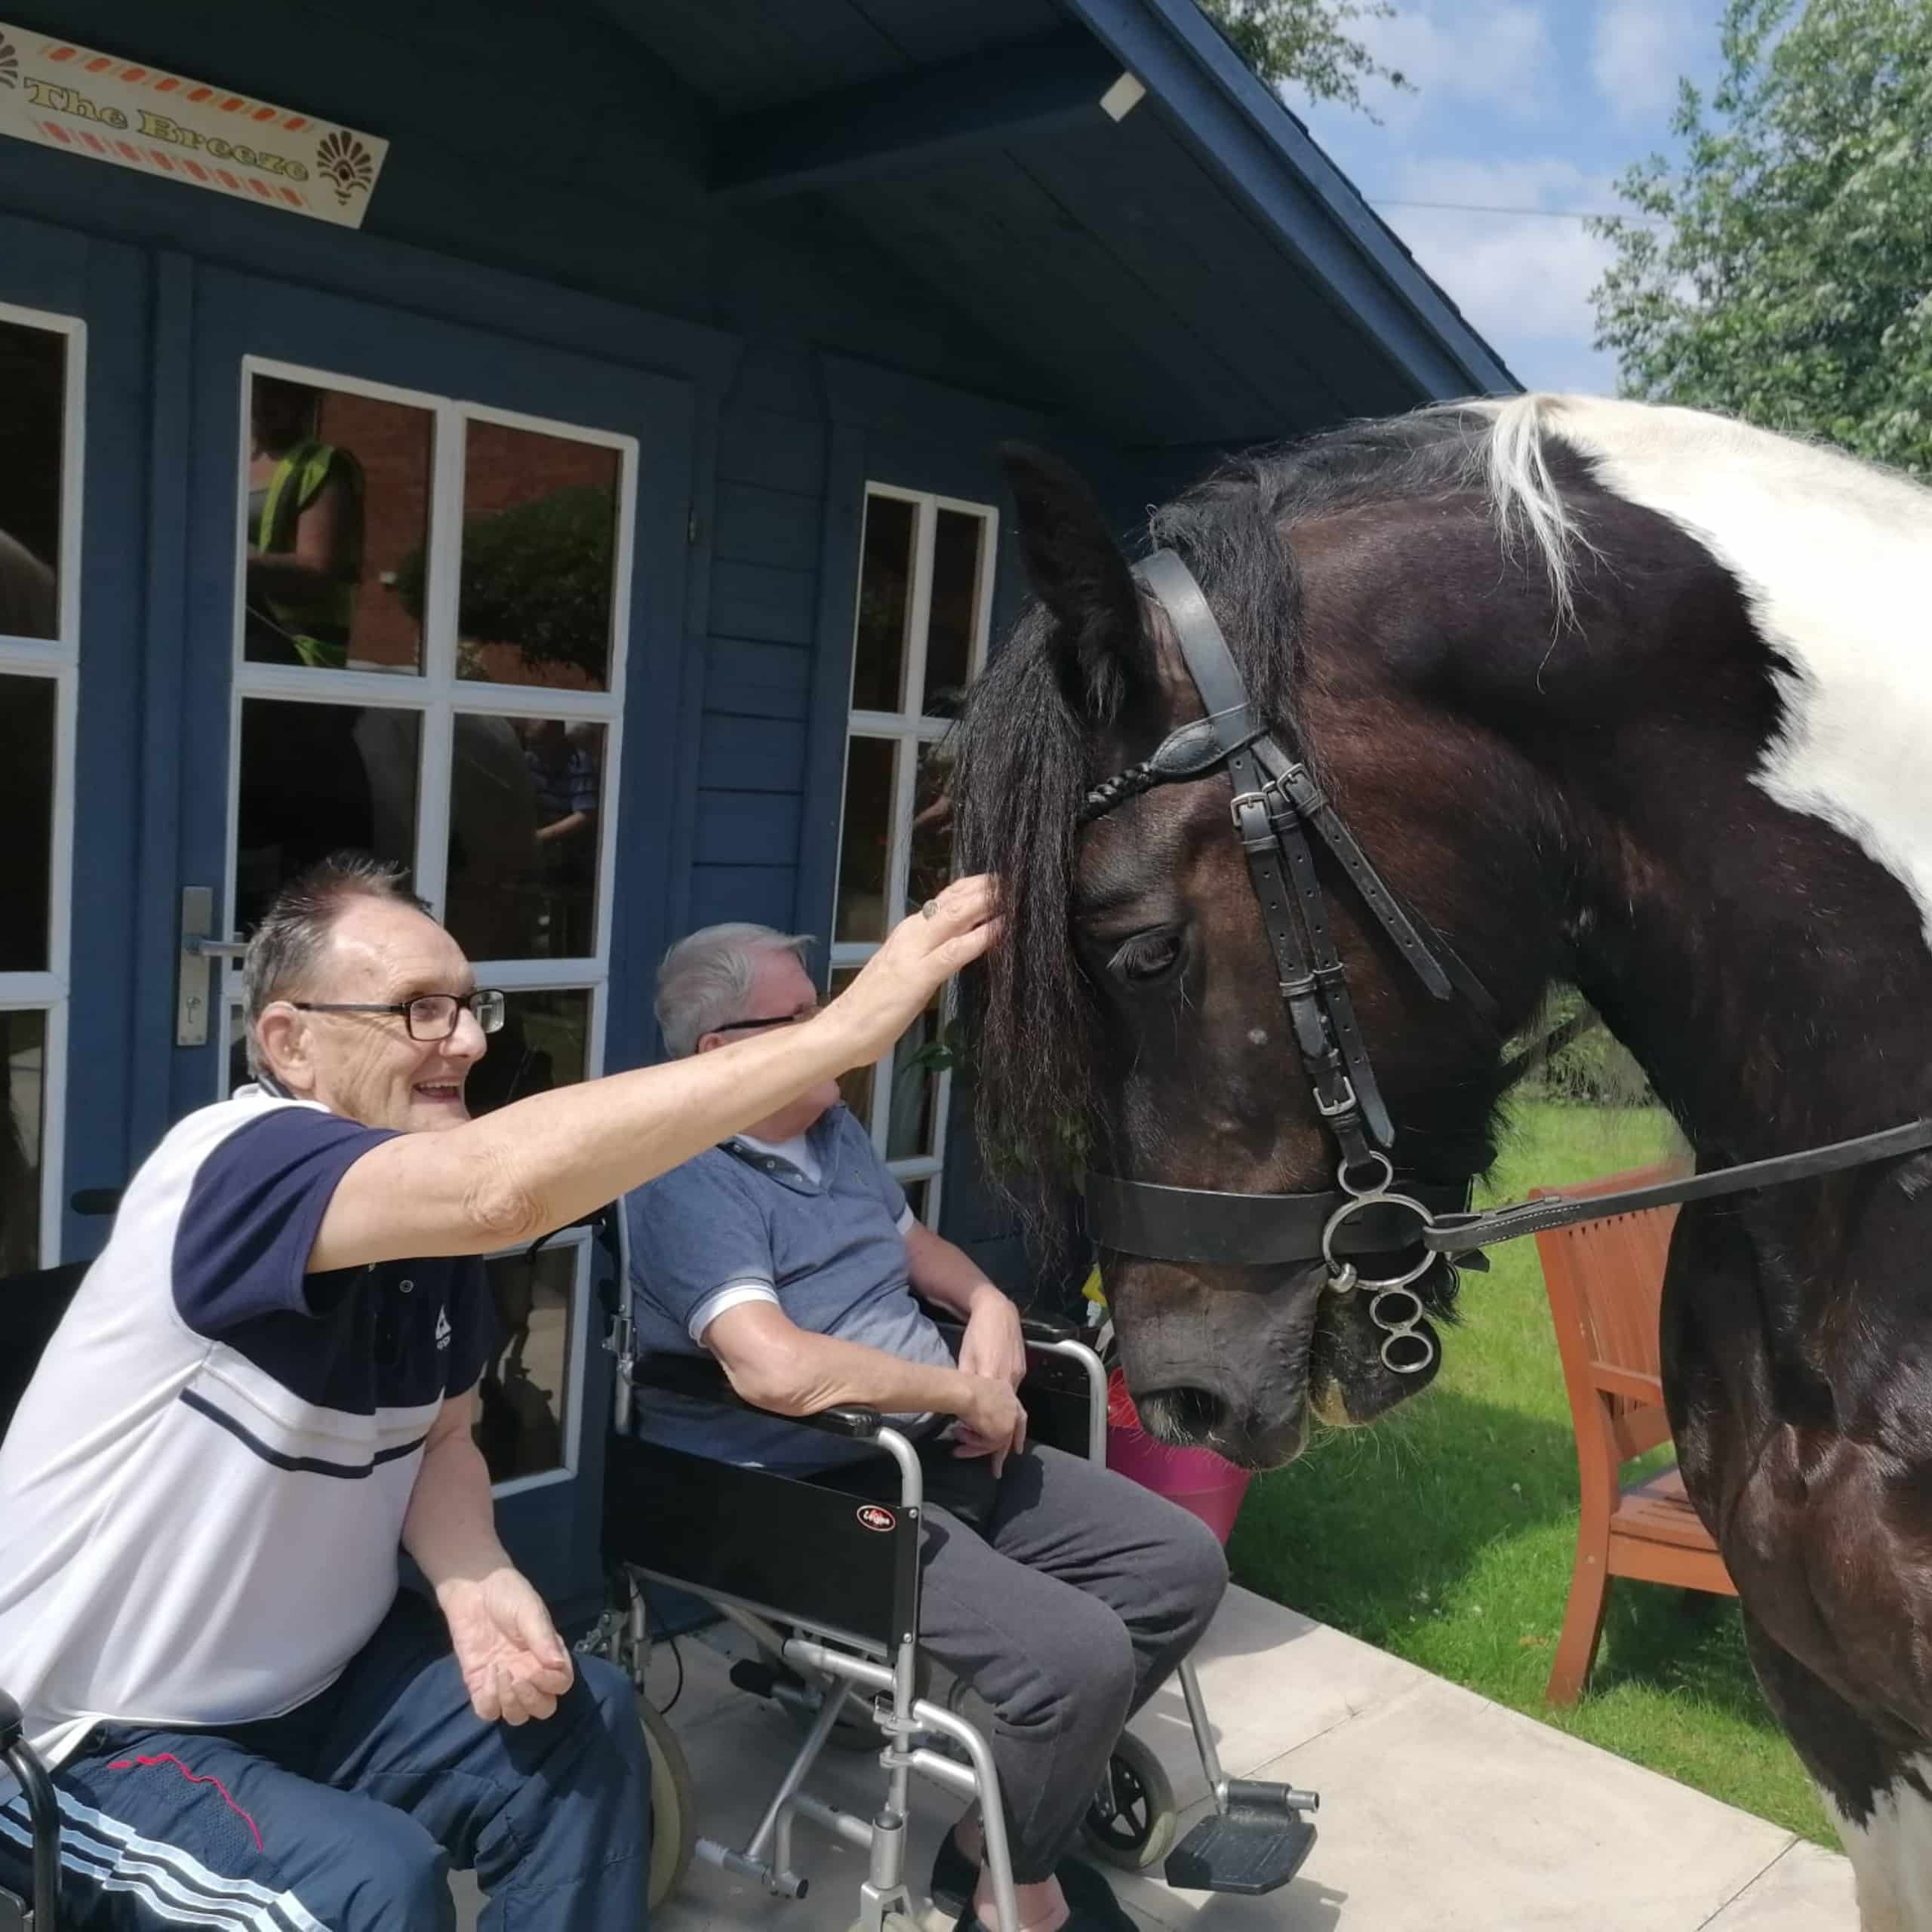 Residents at Manchester care home The Chanters enjoying a garden visit from Splodge the horse.